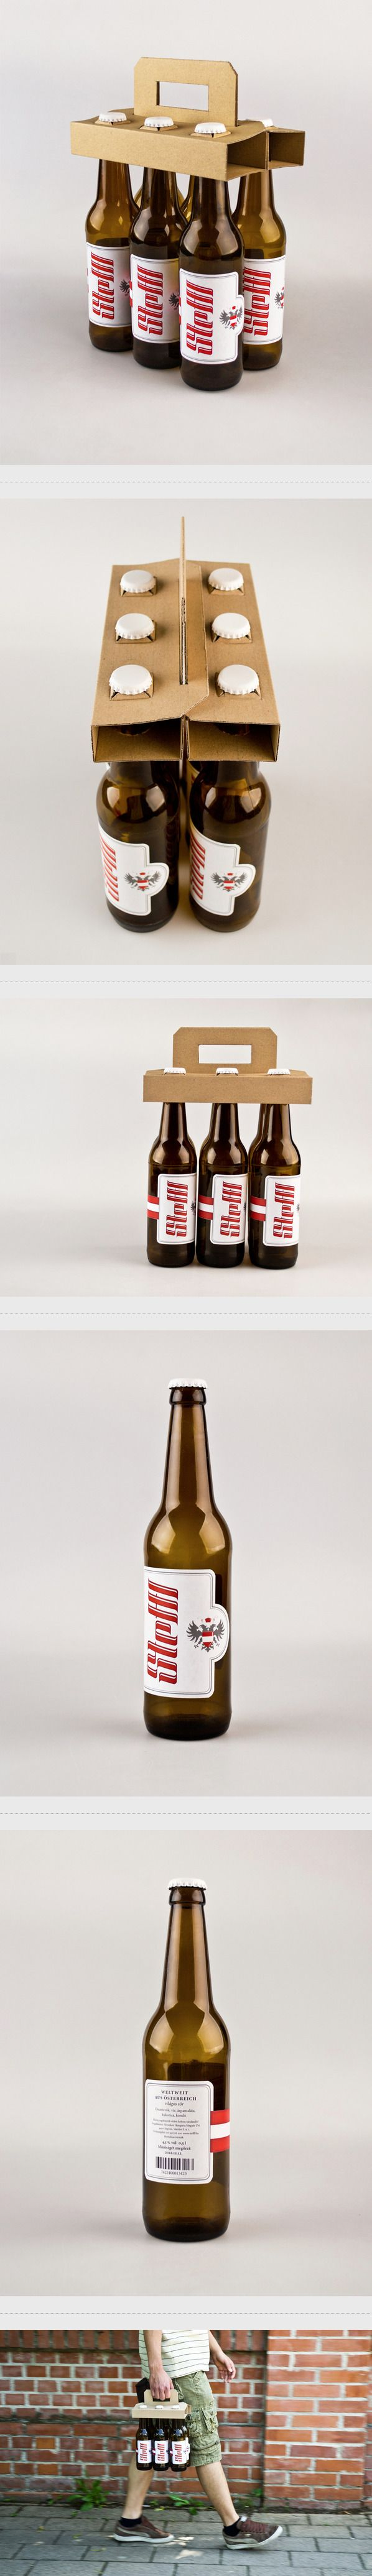 Steffl label & package design by Renato Molnar, via Behance